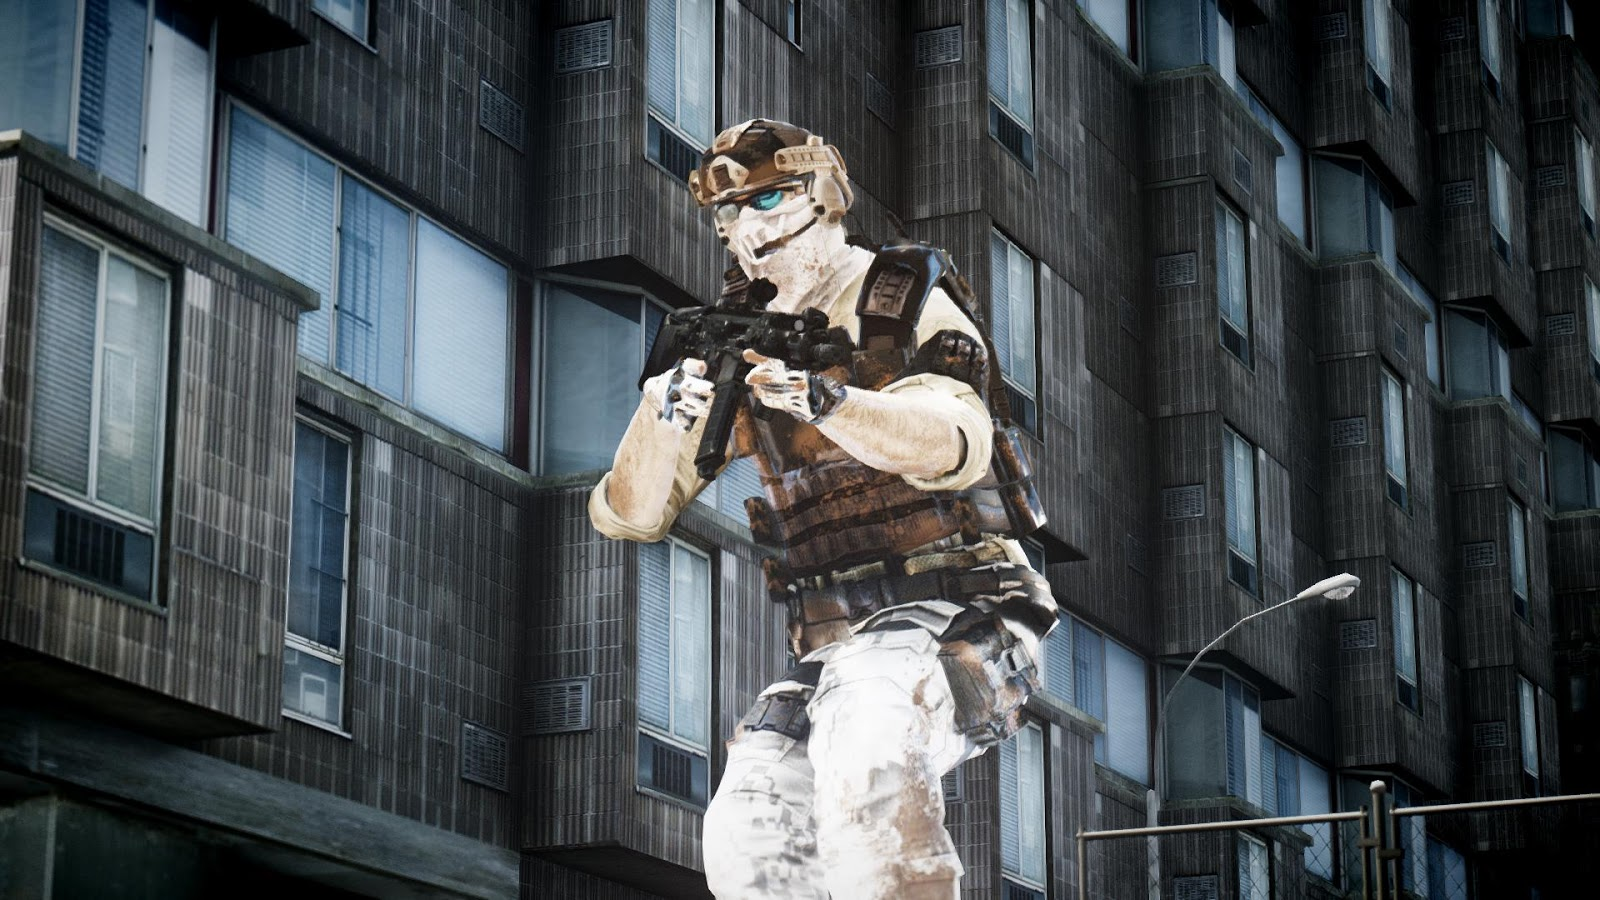 GTA 5,GTAV,GTA IV Mods and Skins: Ghost Recon Future Soldier